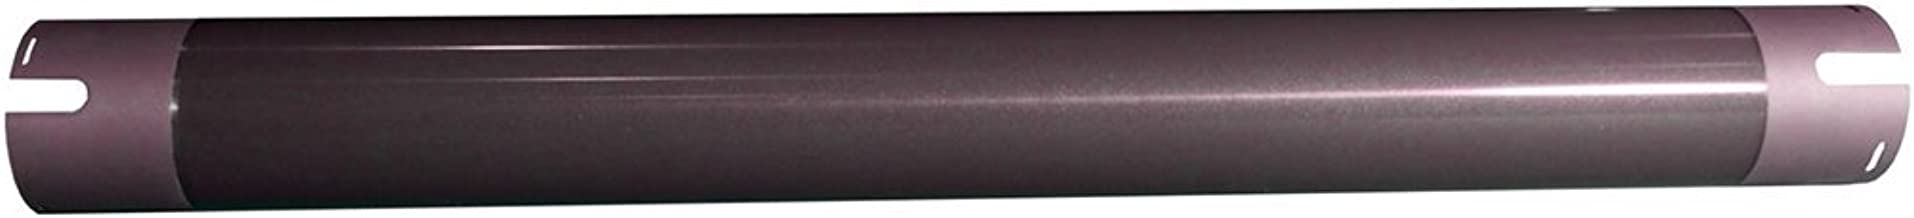 Cost-Saving Compatible® Upper Fuser Roller for use in Canon FC7-4276-010 (FC7-4276-000)